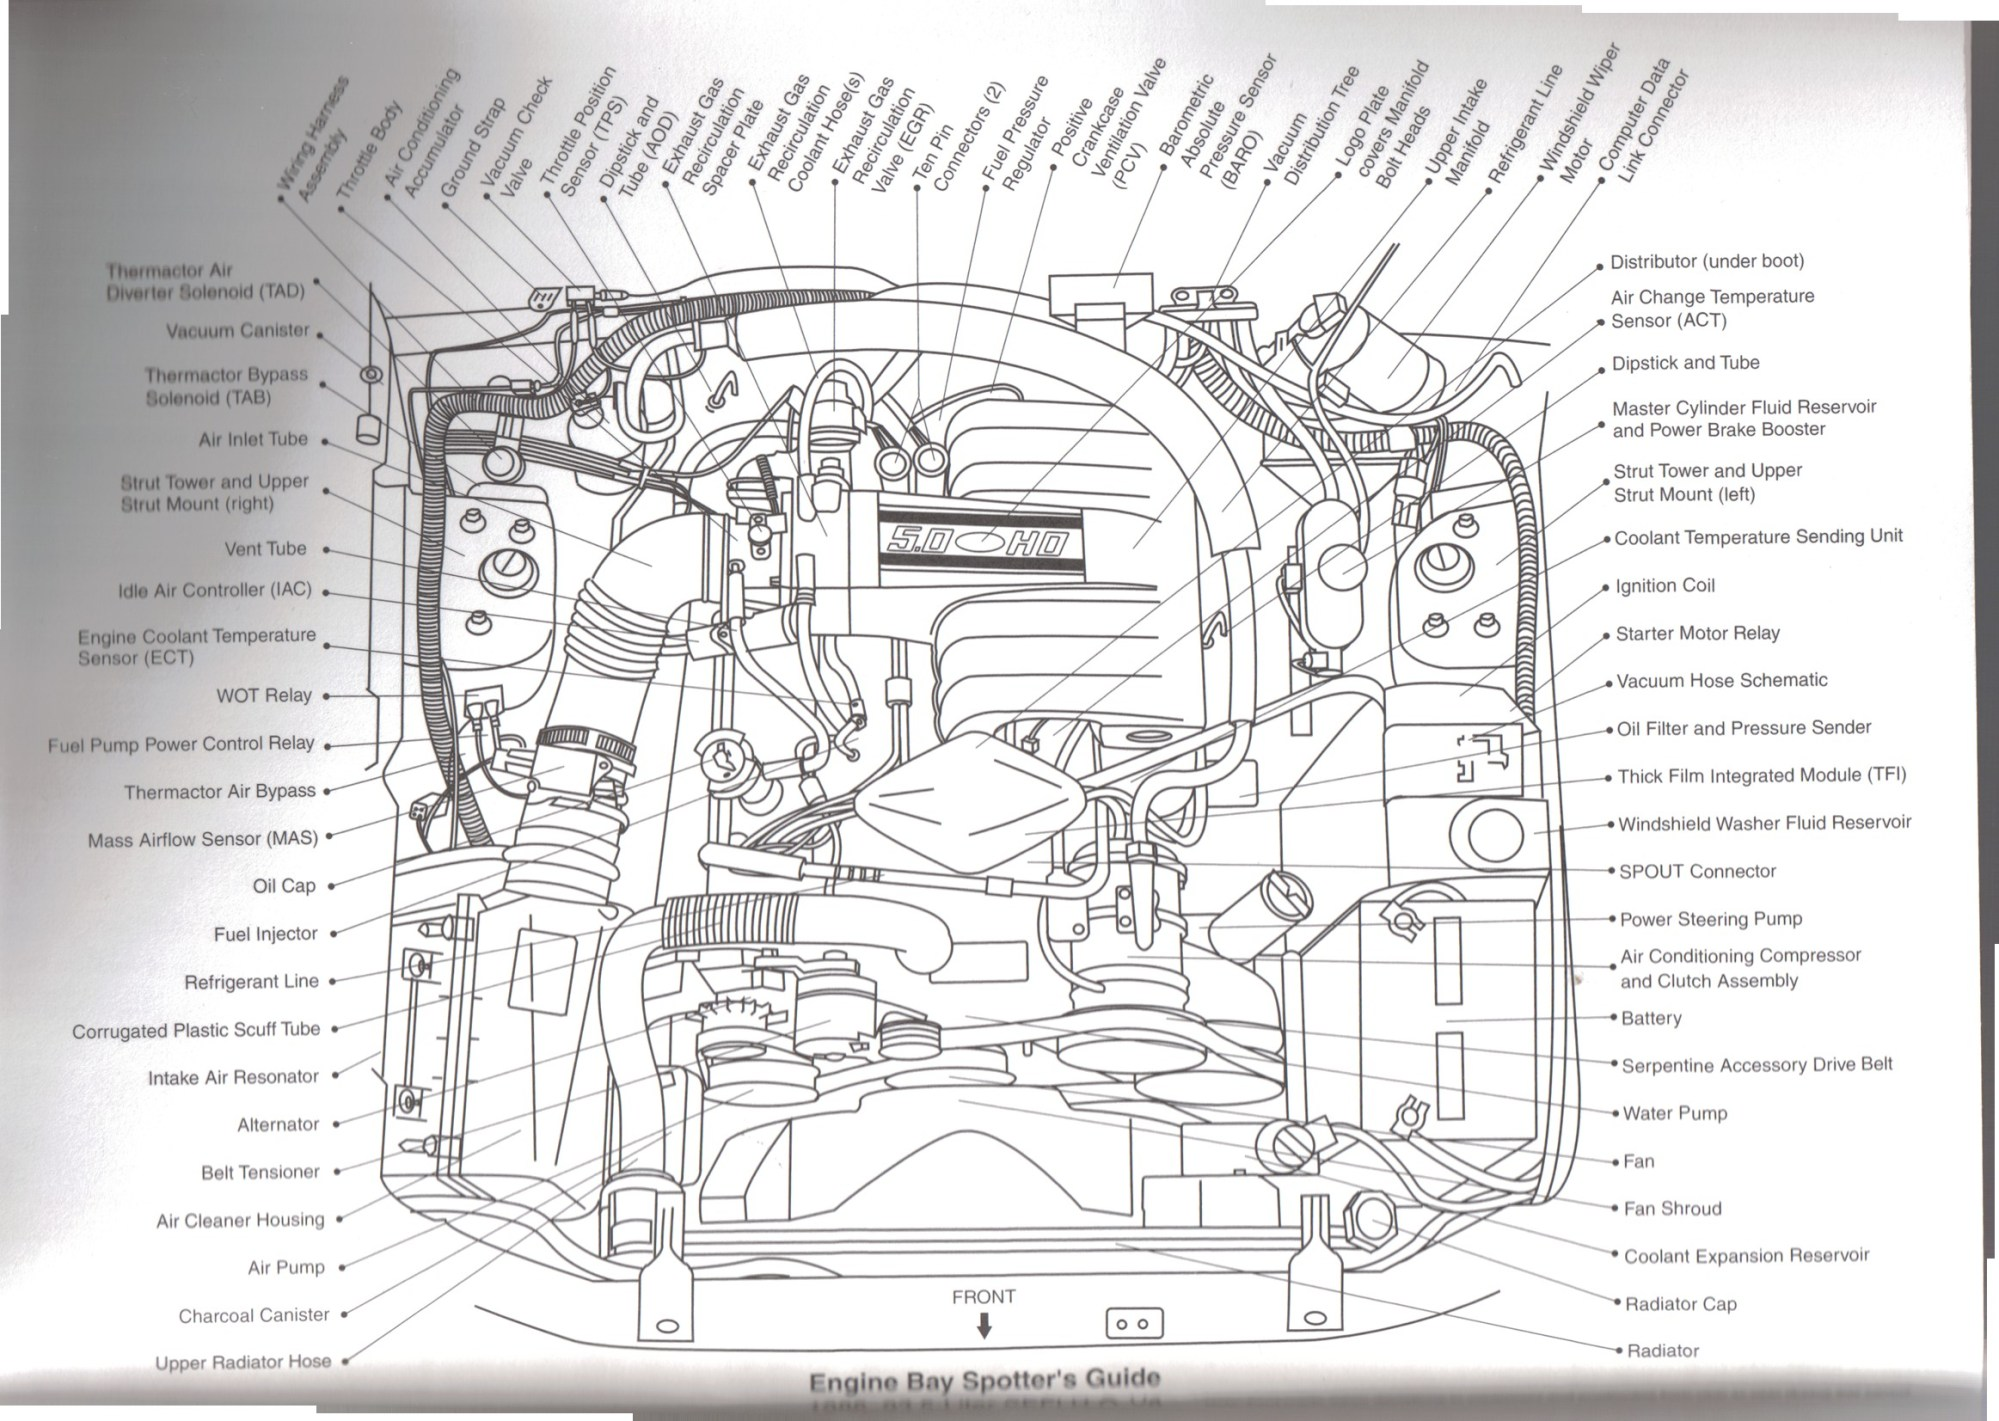 hight resolution of 83 mustang wiring diagram wiring diagram blog mix 83 mustang engine wiring harness use wiring diagram